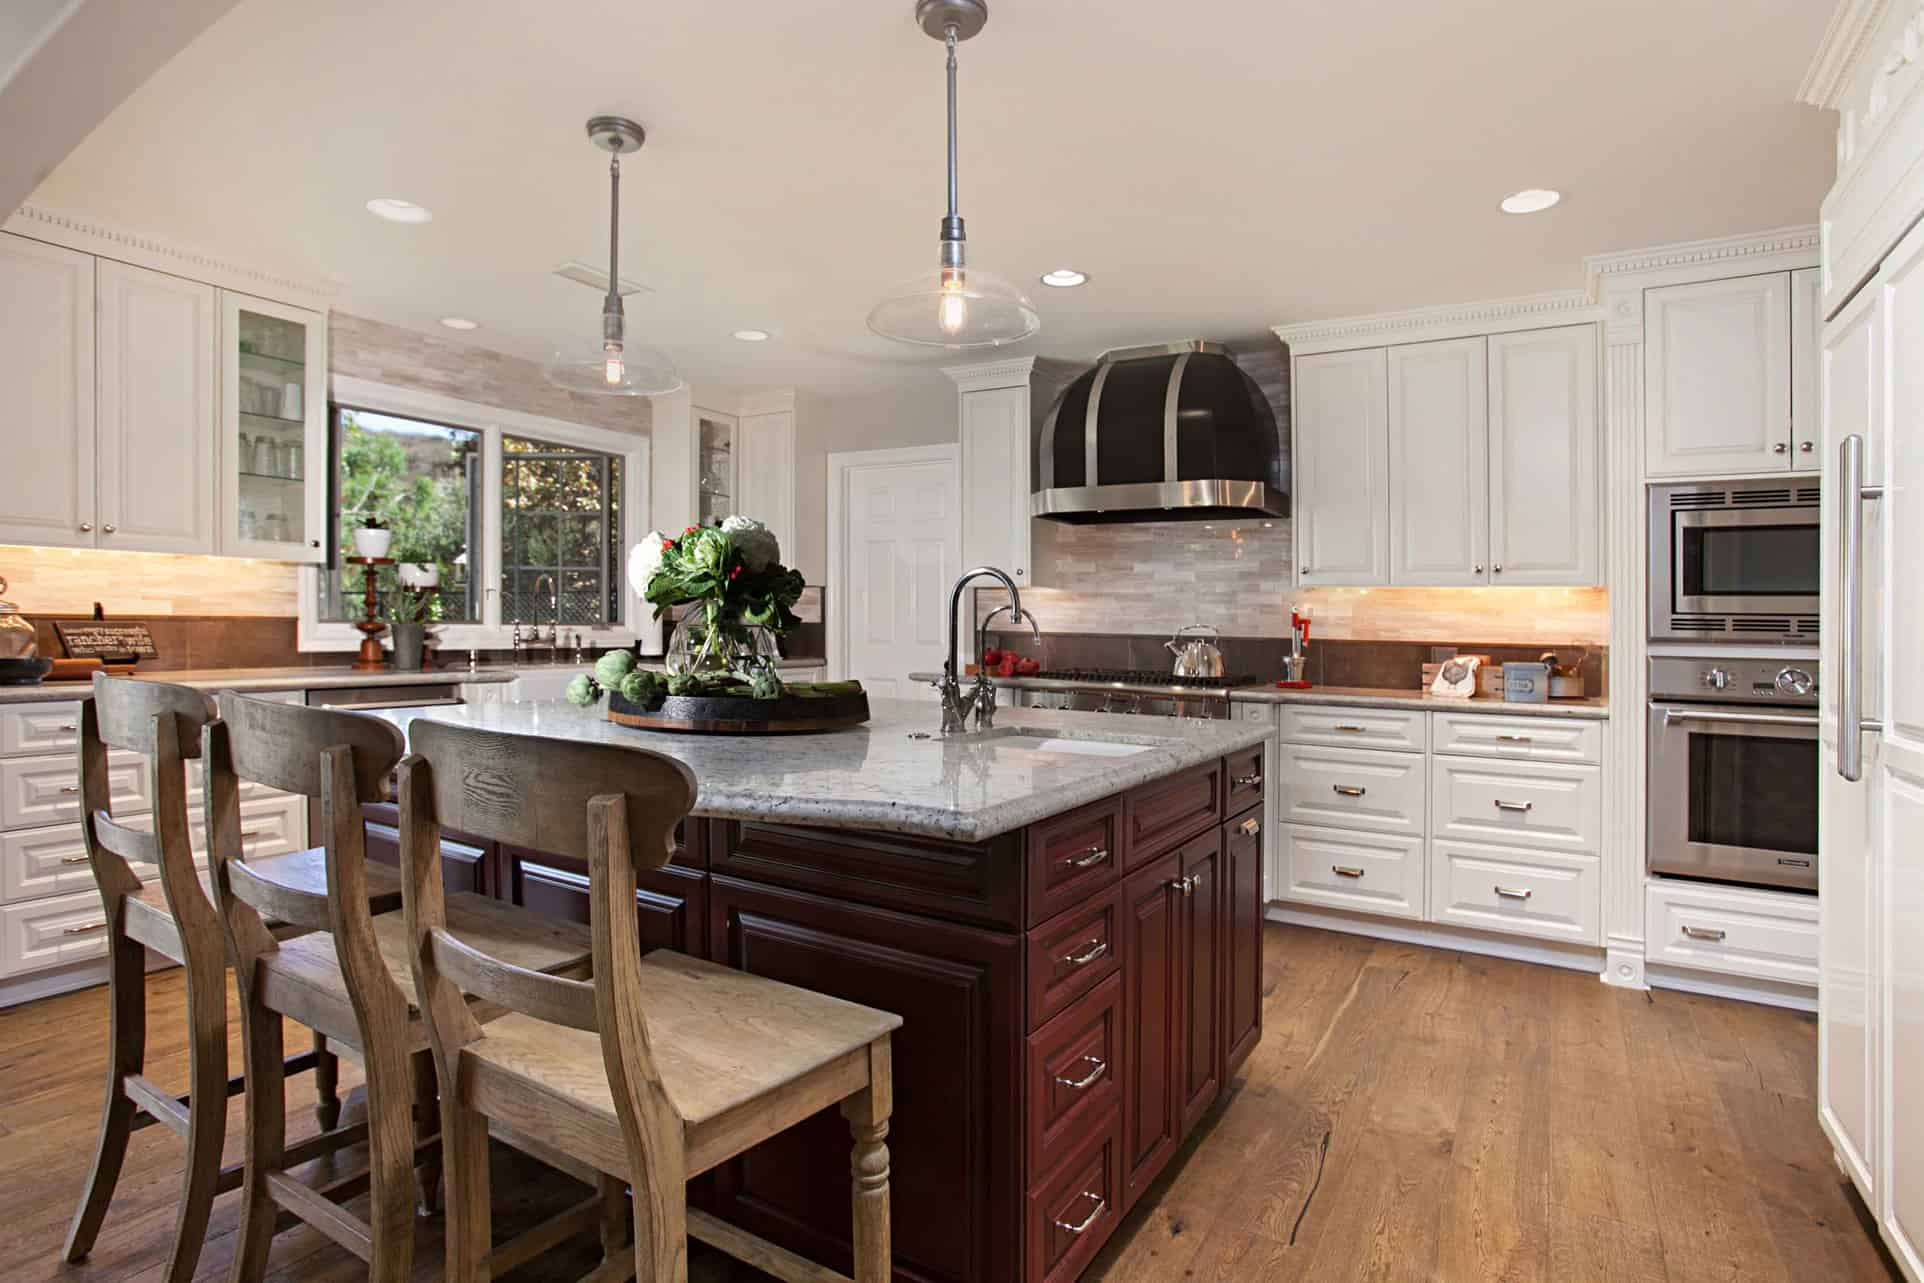 Modern Farmhouse Kitchen - Jackson Design & Remodeling on Modern Kitchens  id=87315